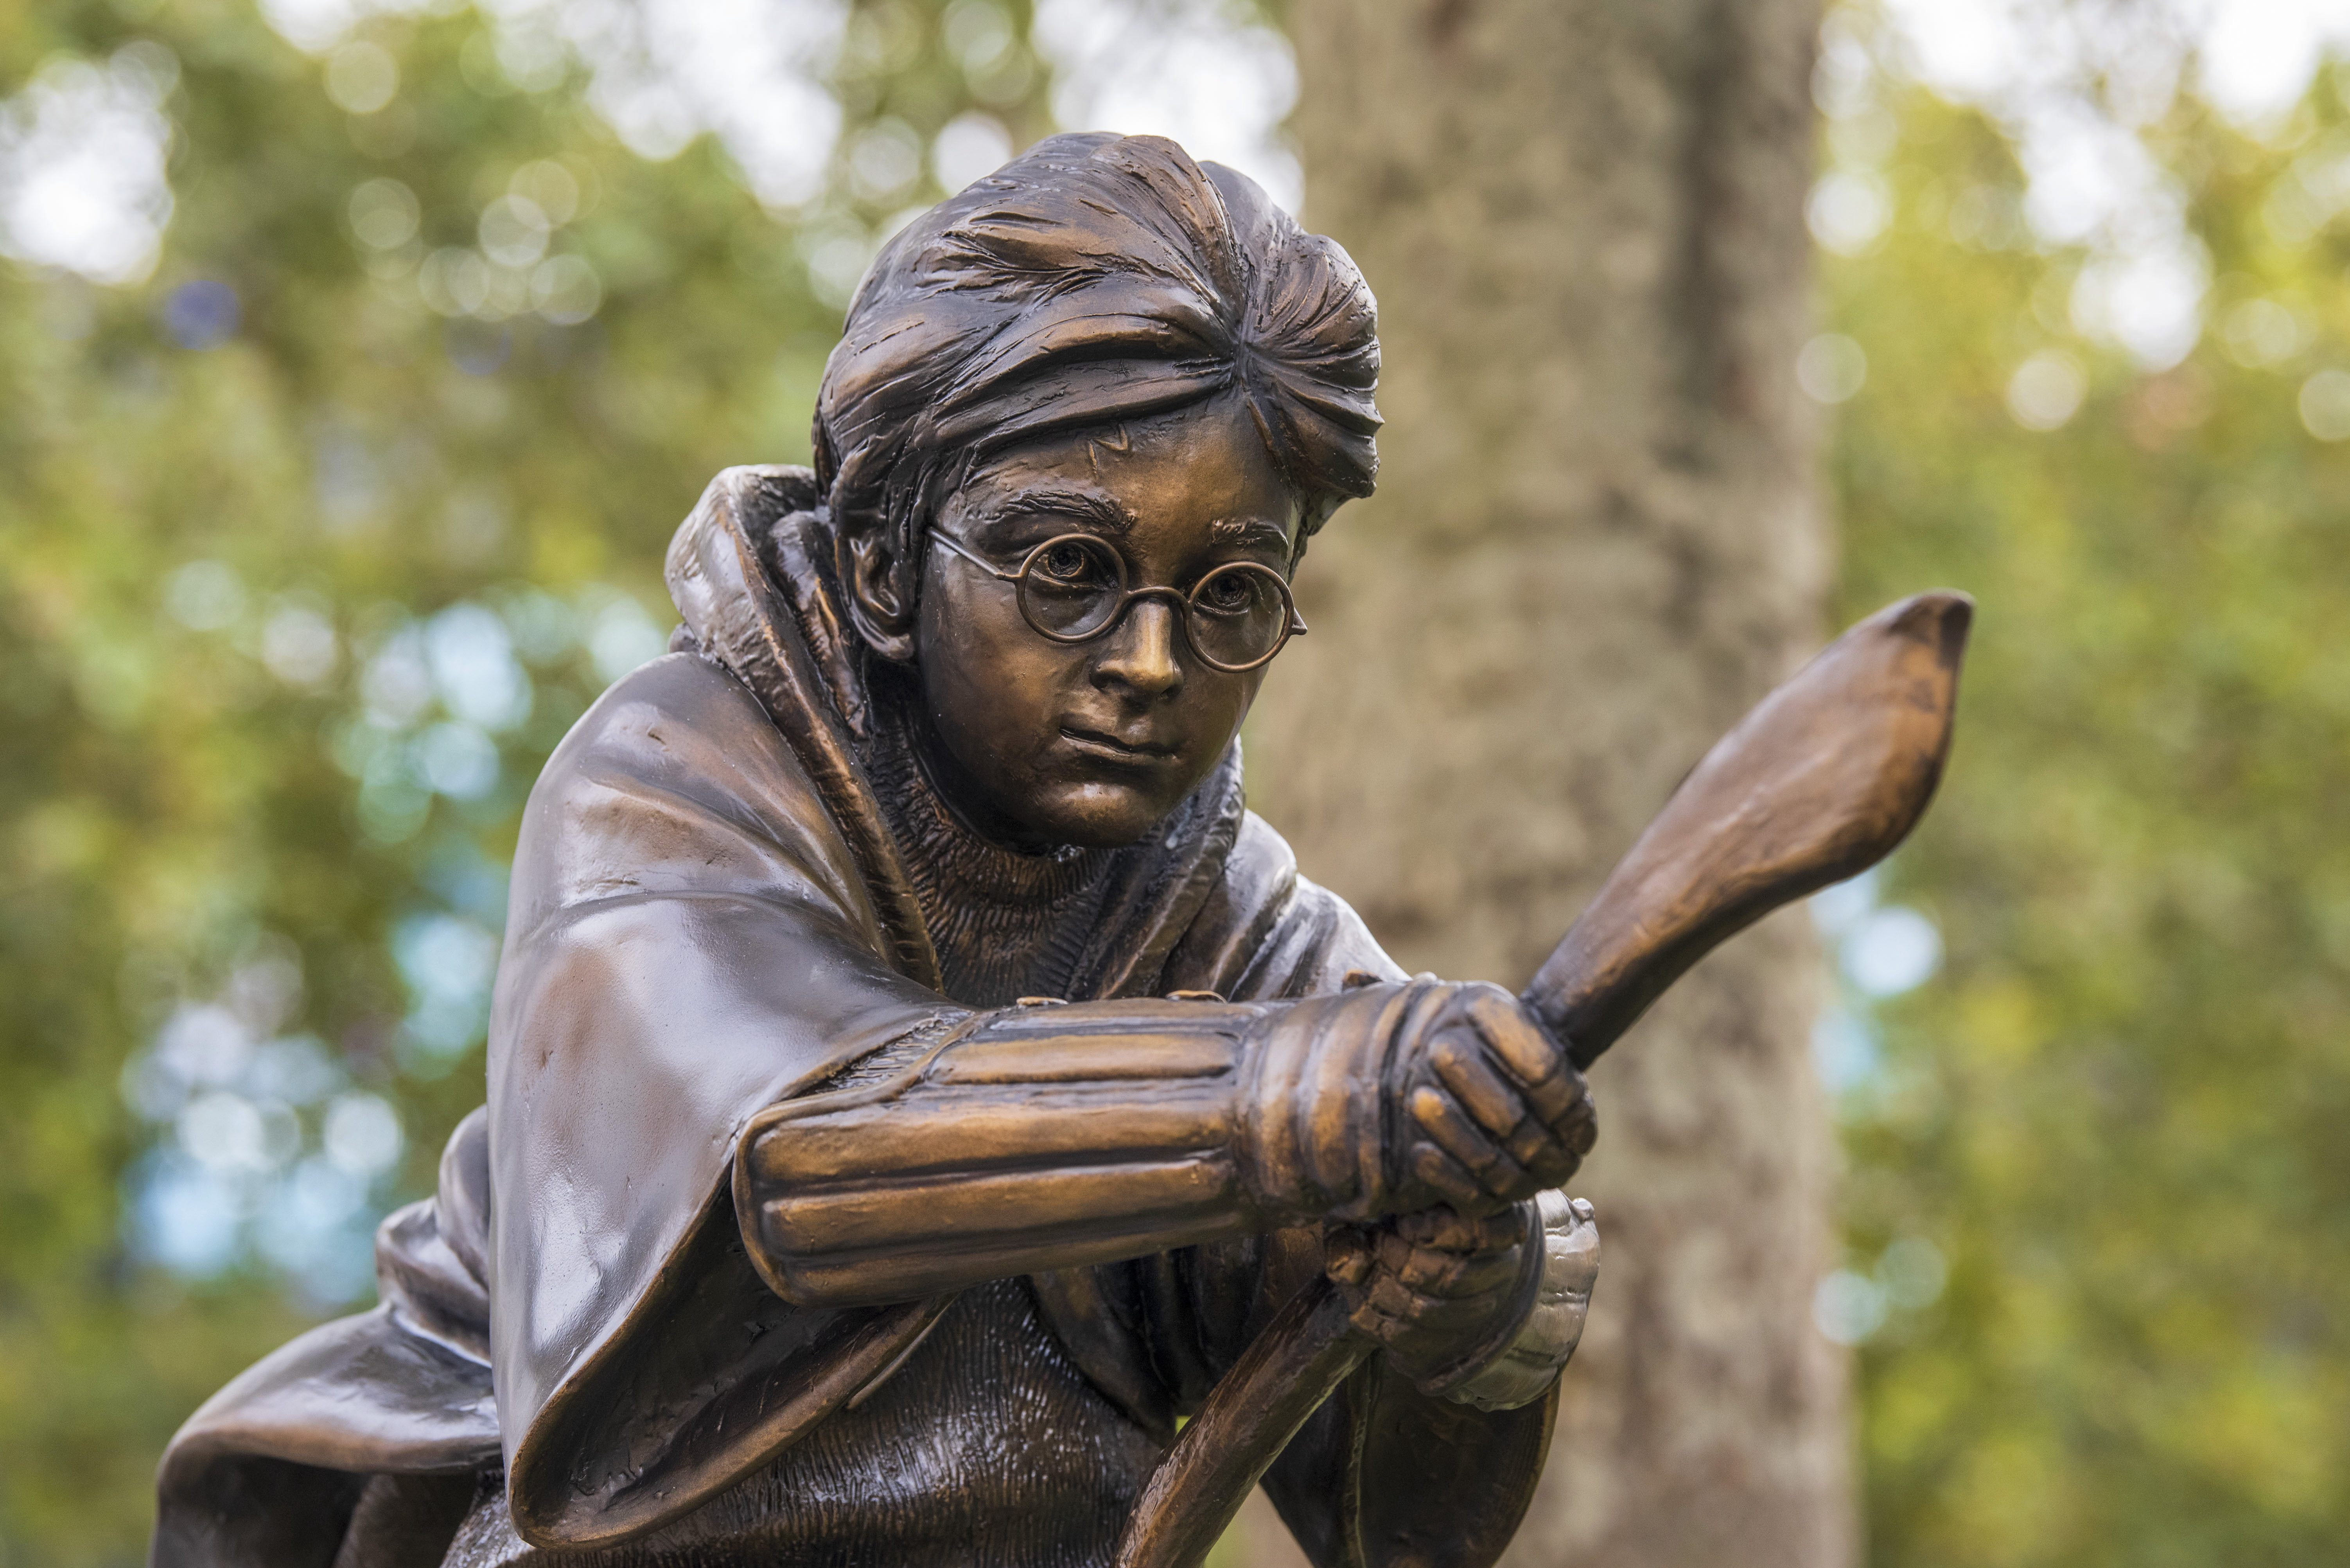 A new statue of Harry Potter in Leicester Square, London which has joined the eight other movie statues already in on display there. (Photo by Dave Rushen / SOPA Images/Sipa USA)